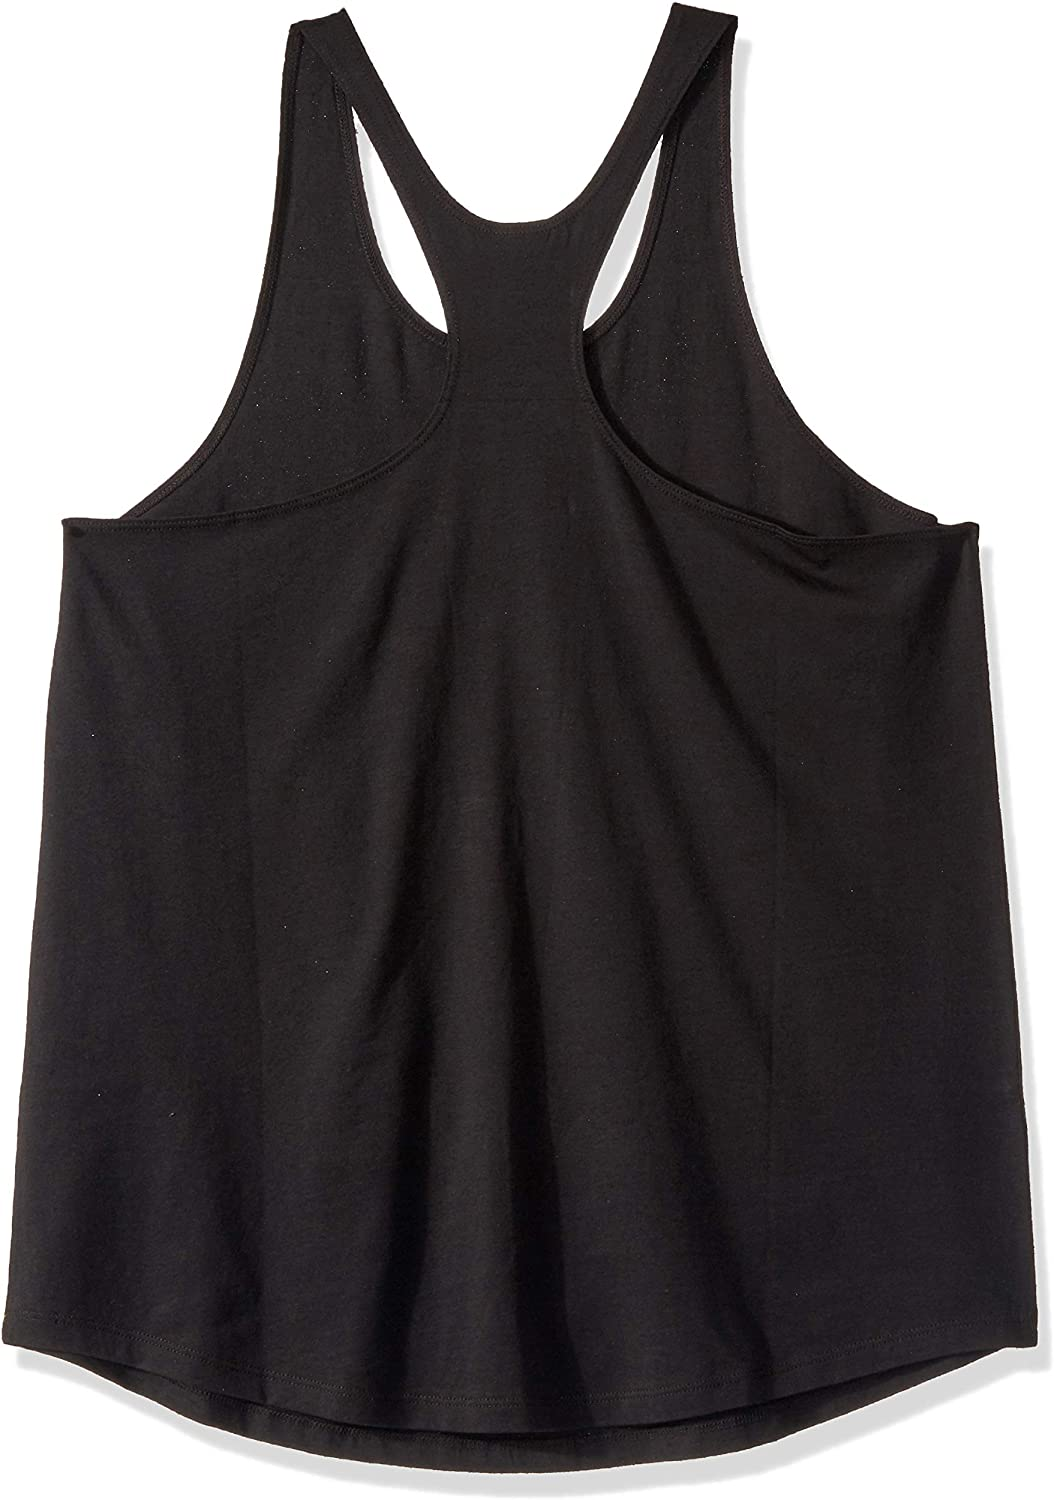 Zumba Womens Graphic Design Black Loose Breathable Workout Tank Top Shirt